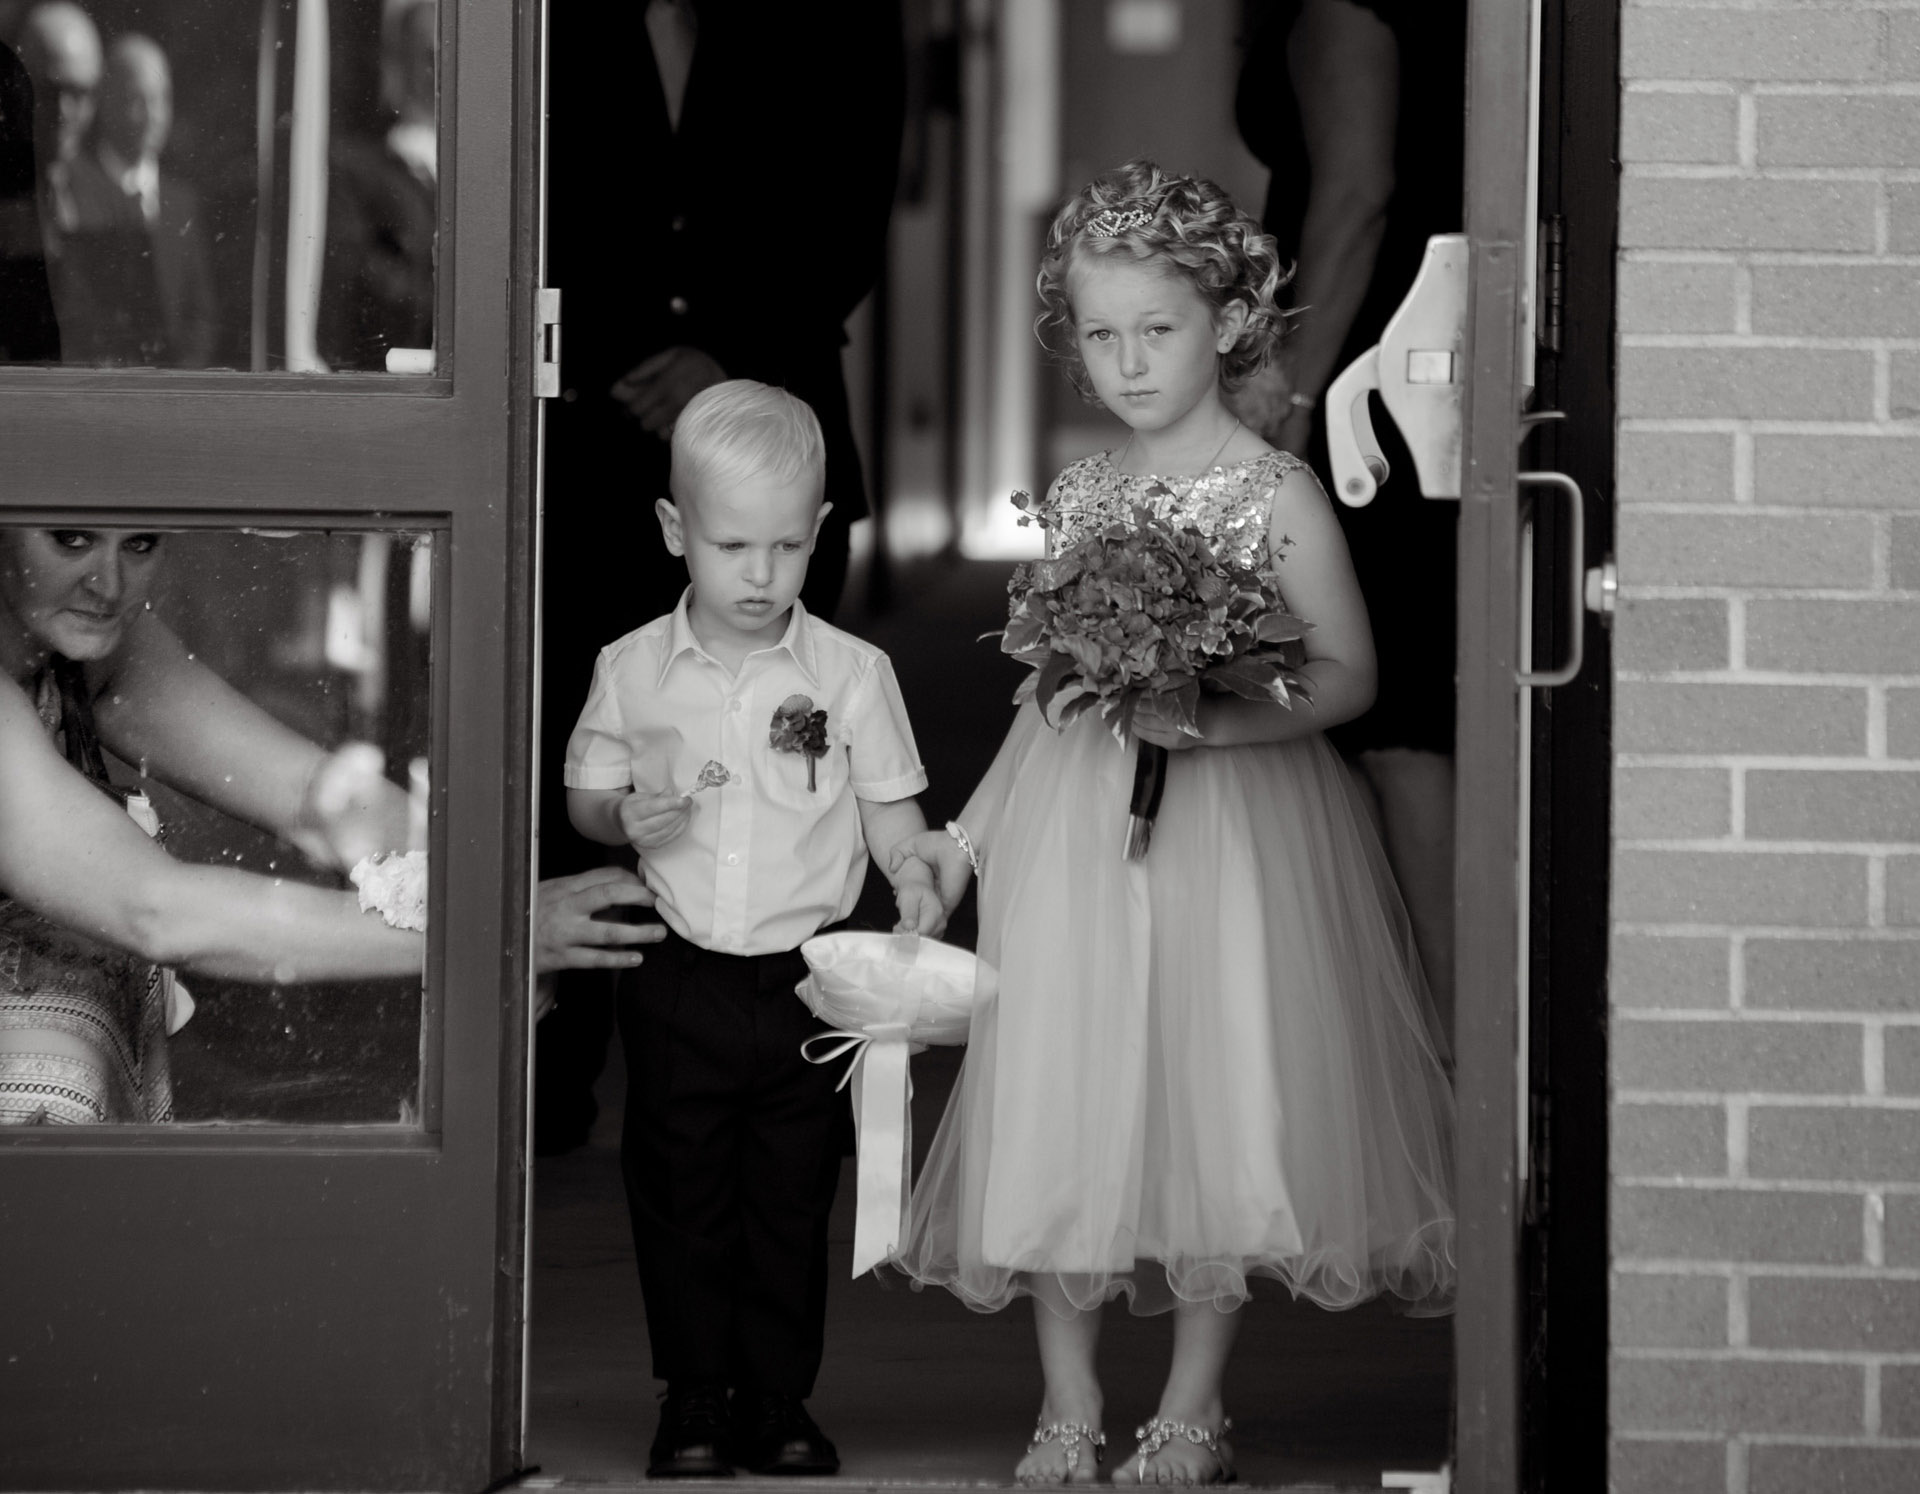 budget conscience brides featuring contemporary and Pinterest worthy wedding photographs in Michigan highlights moving away from Pinterest to creating your unique wedding photography showing the flower girl and the ring bearer getting lined up to start down the aisle at the Michigan wedding that emphasized photojournalist's moments and kept the bride on her budget.